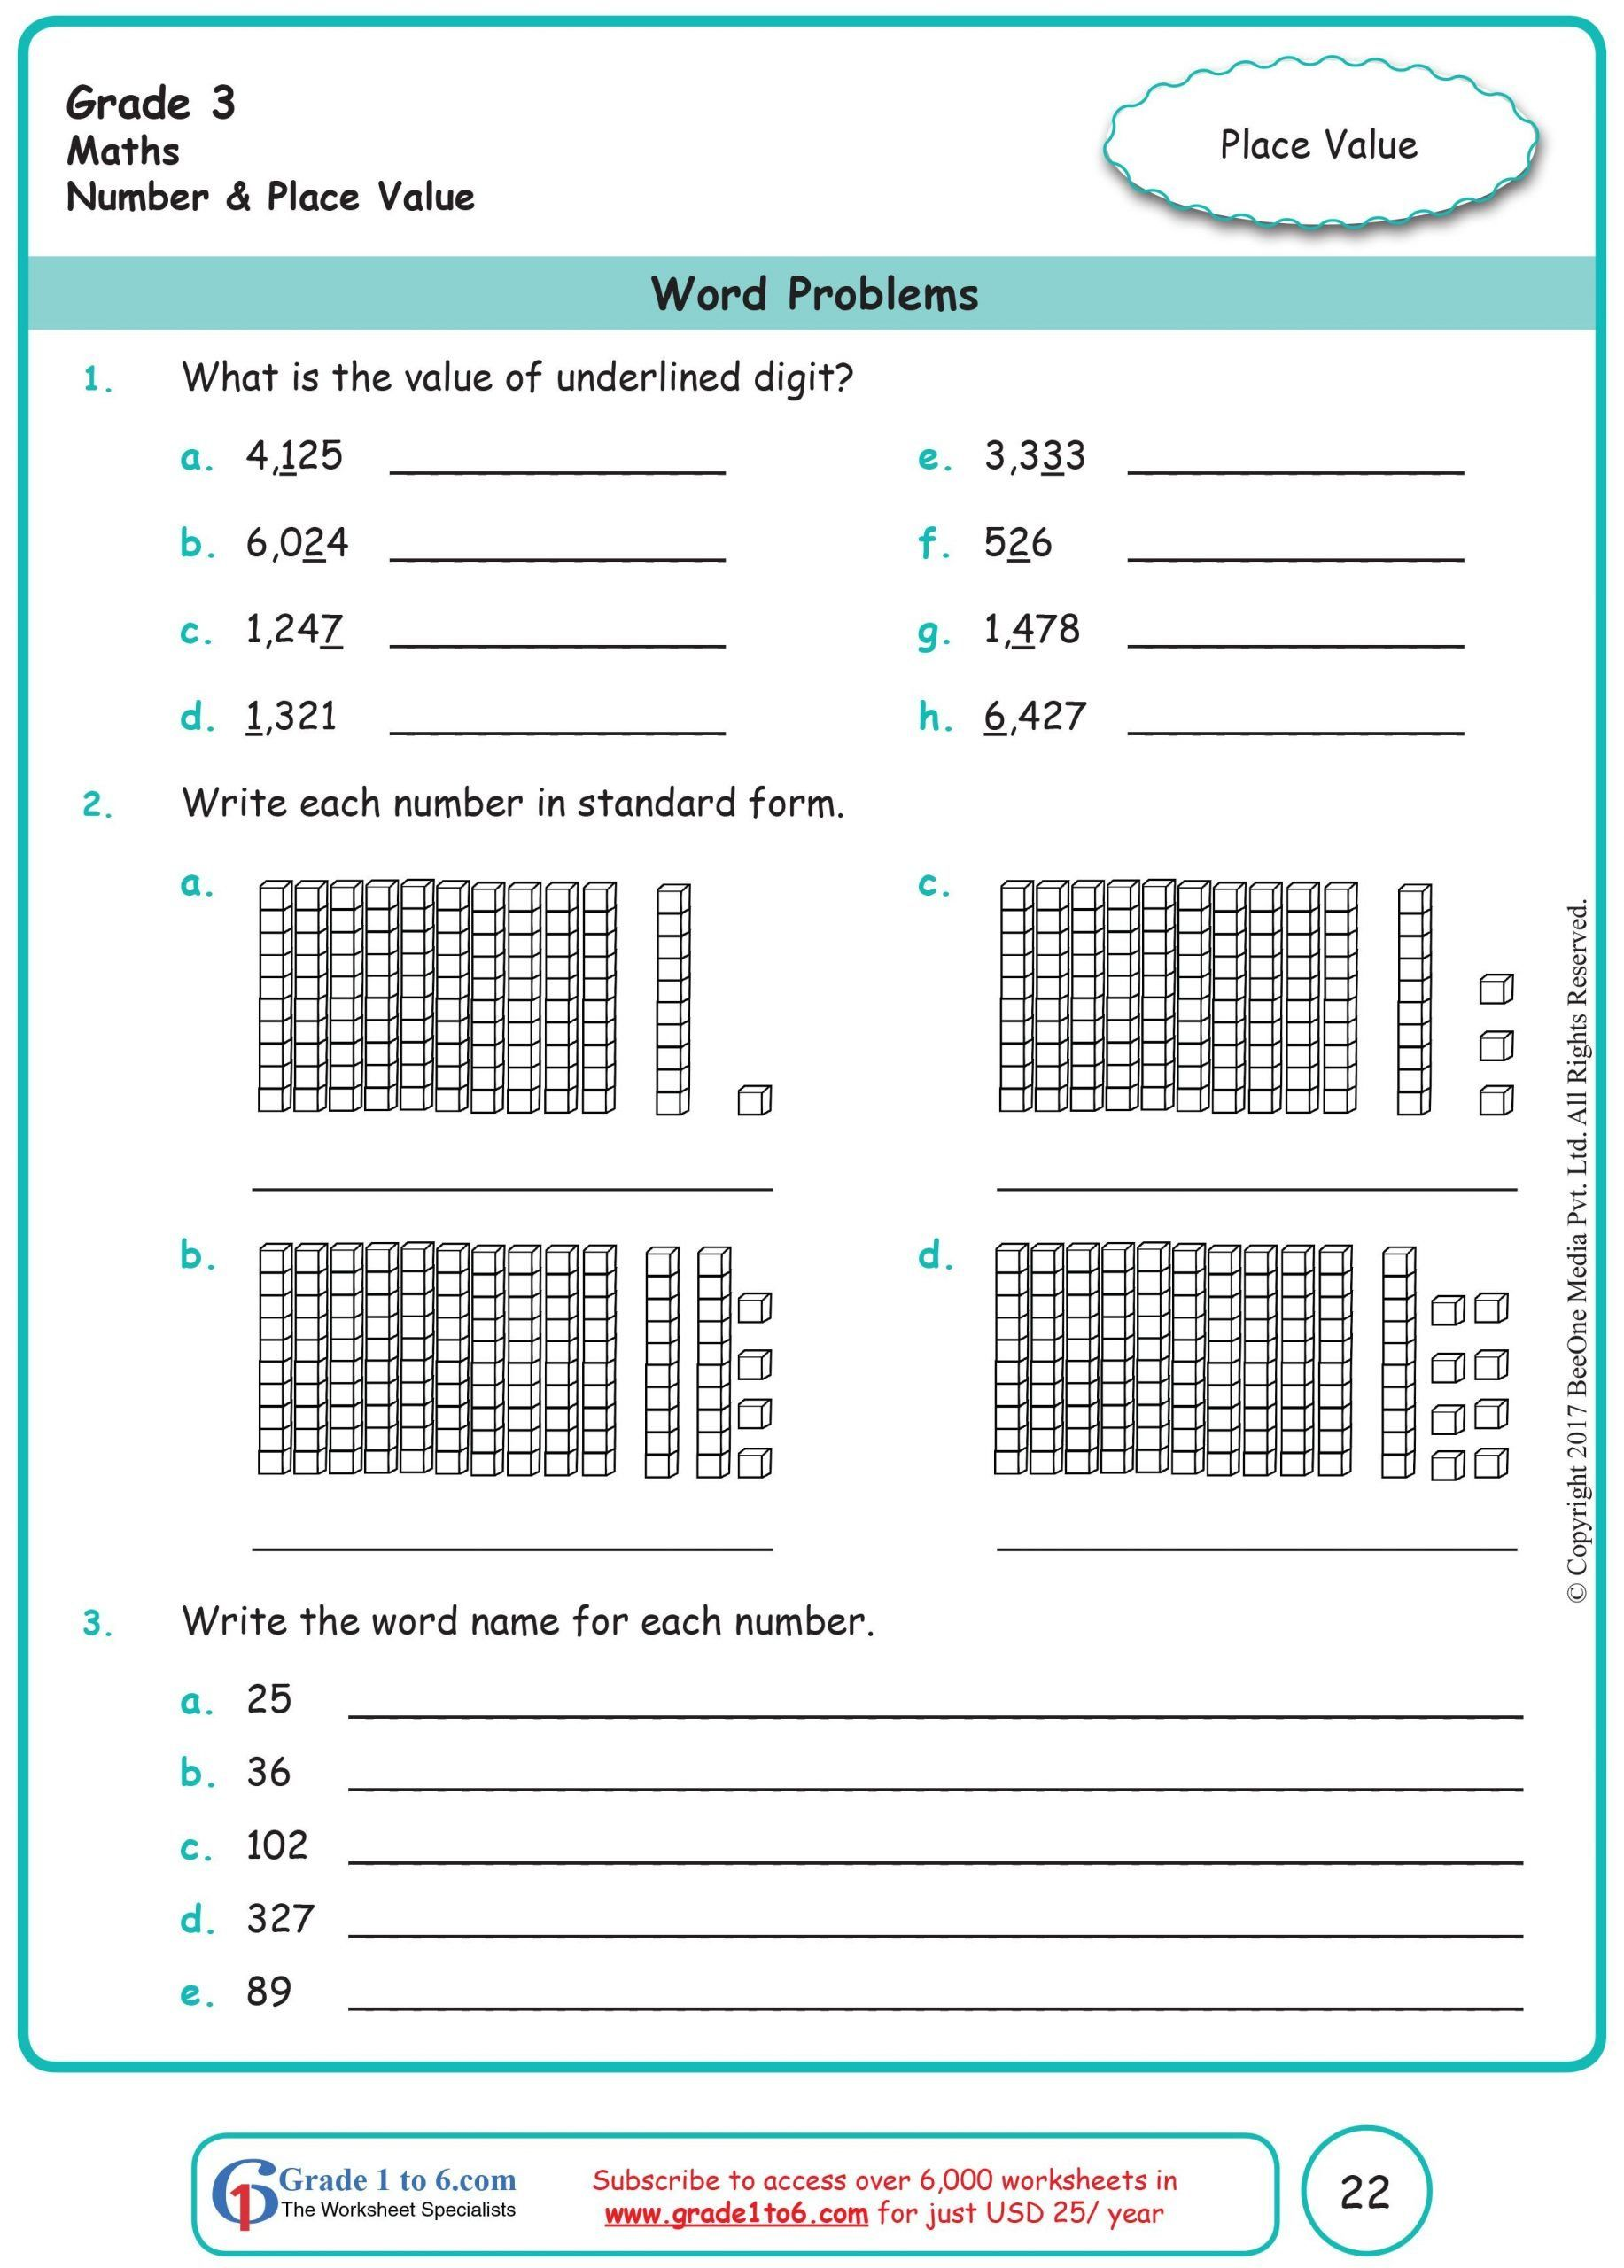 Abeka 3rd Grade Math Worksheets Pin Di Grade 3 Math